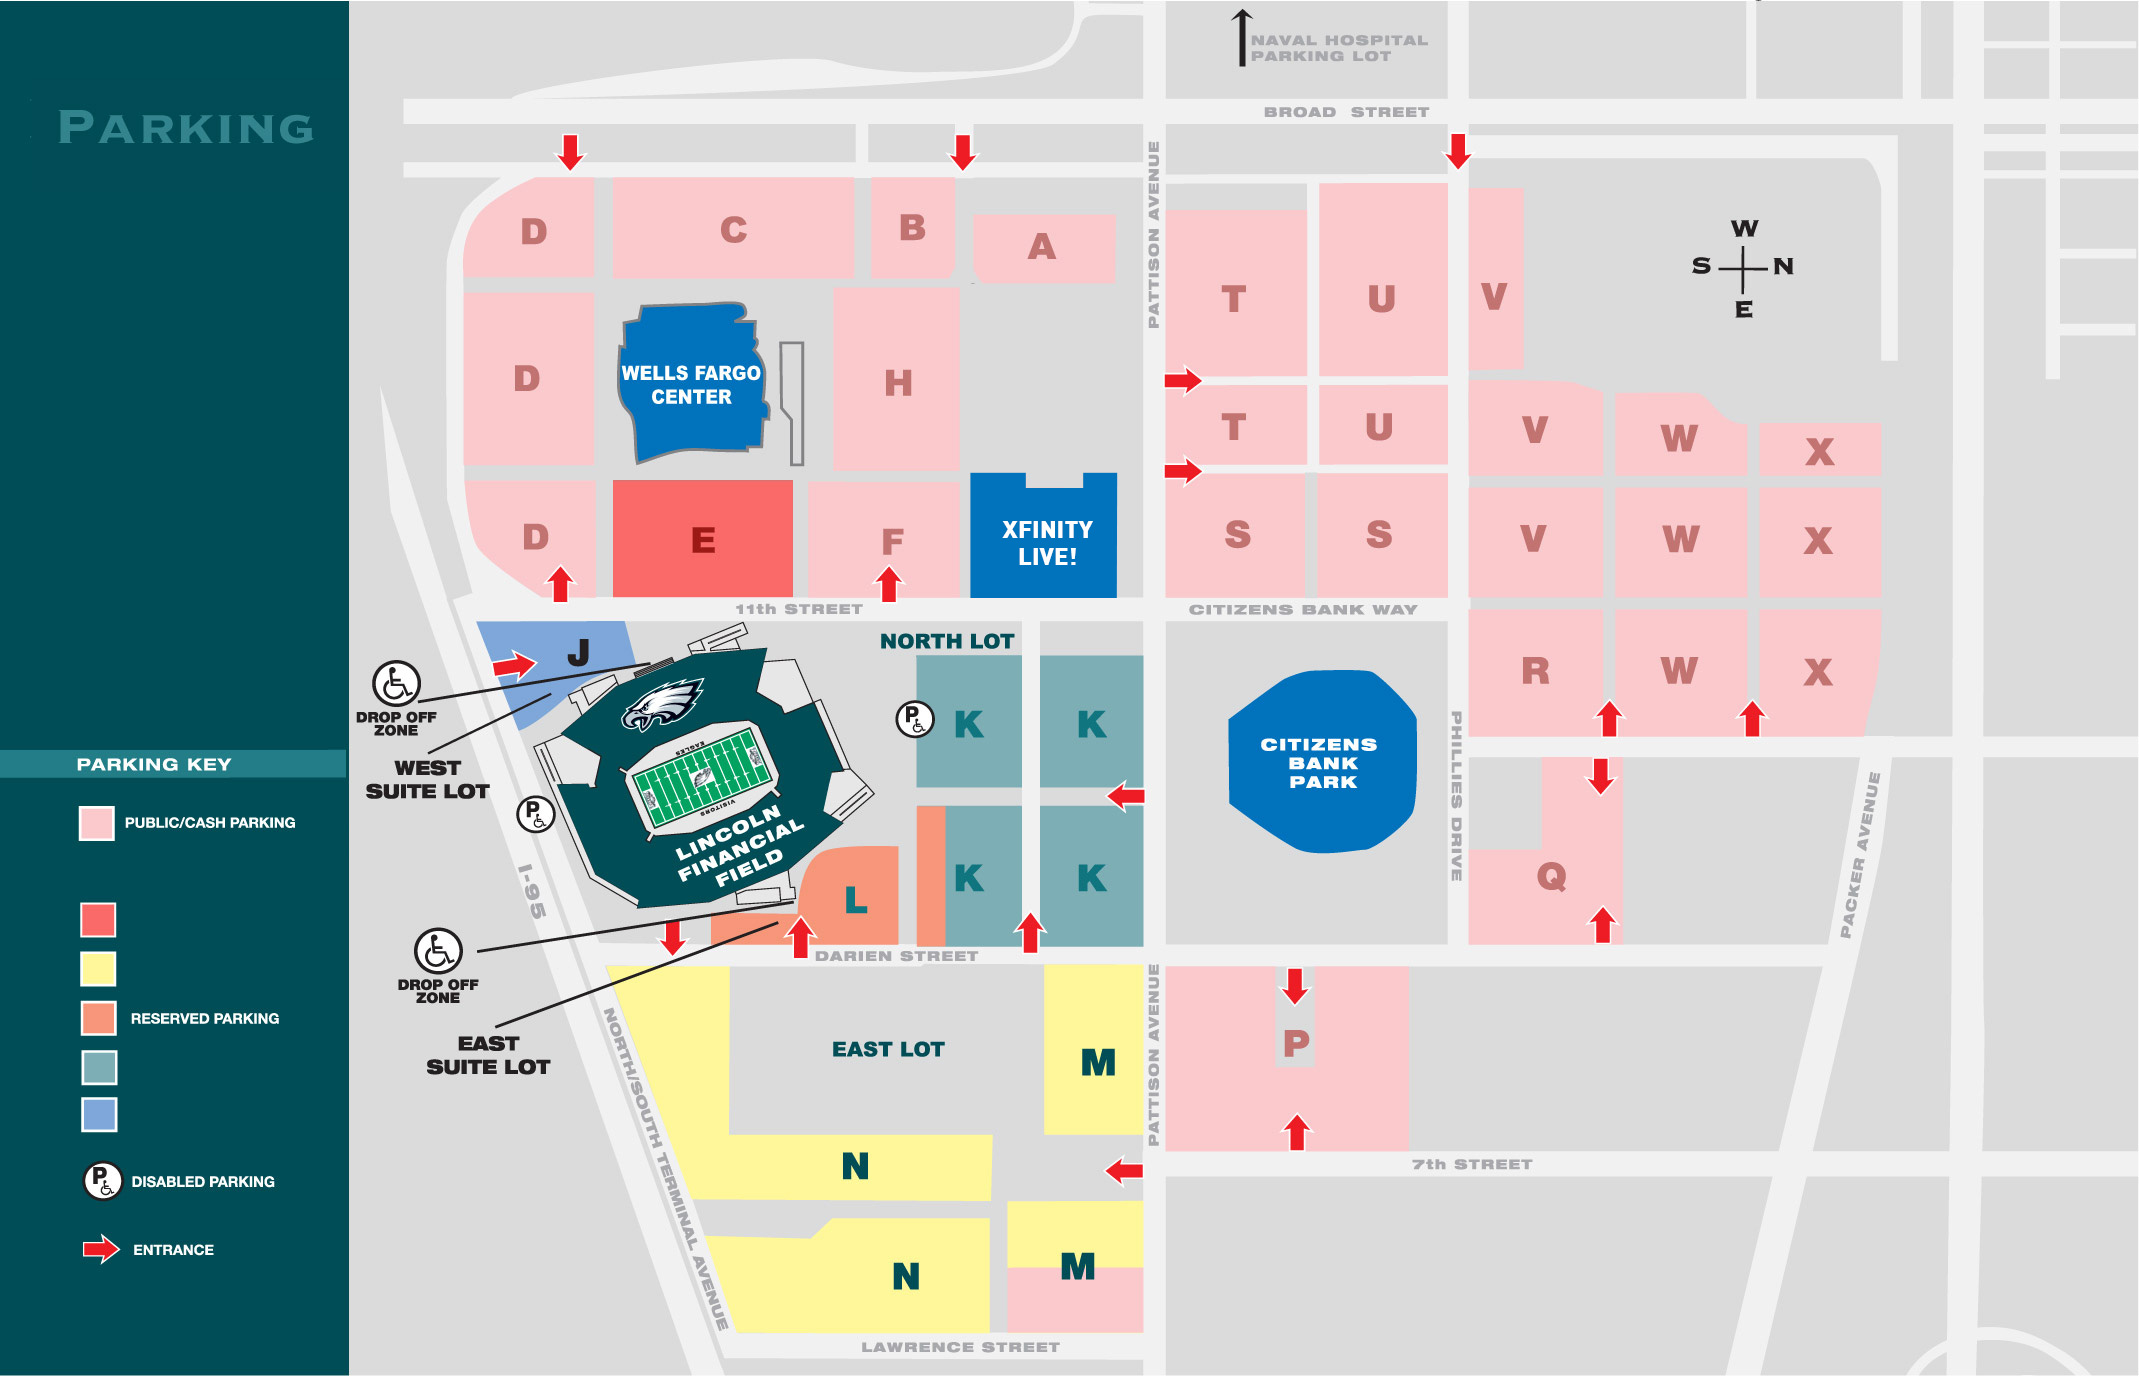 Lincoln Financial Field Map Buy and Sell Parking Passes for the Philadelphia Eagles SBL at